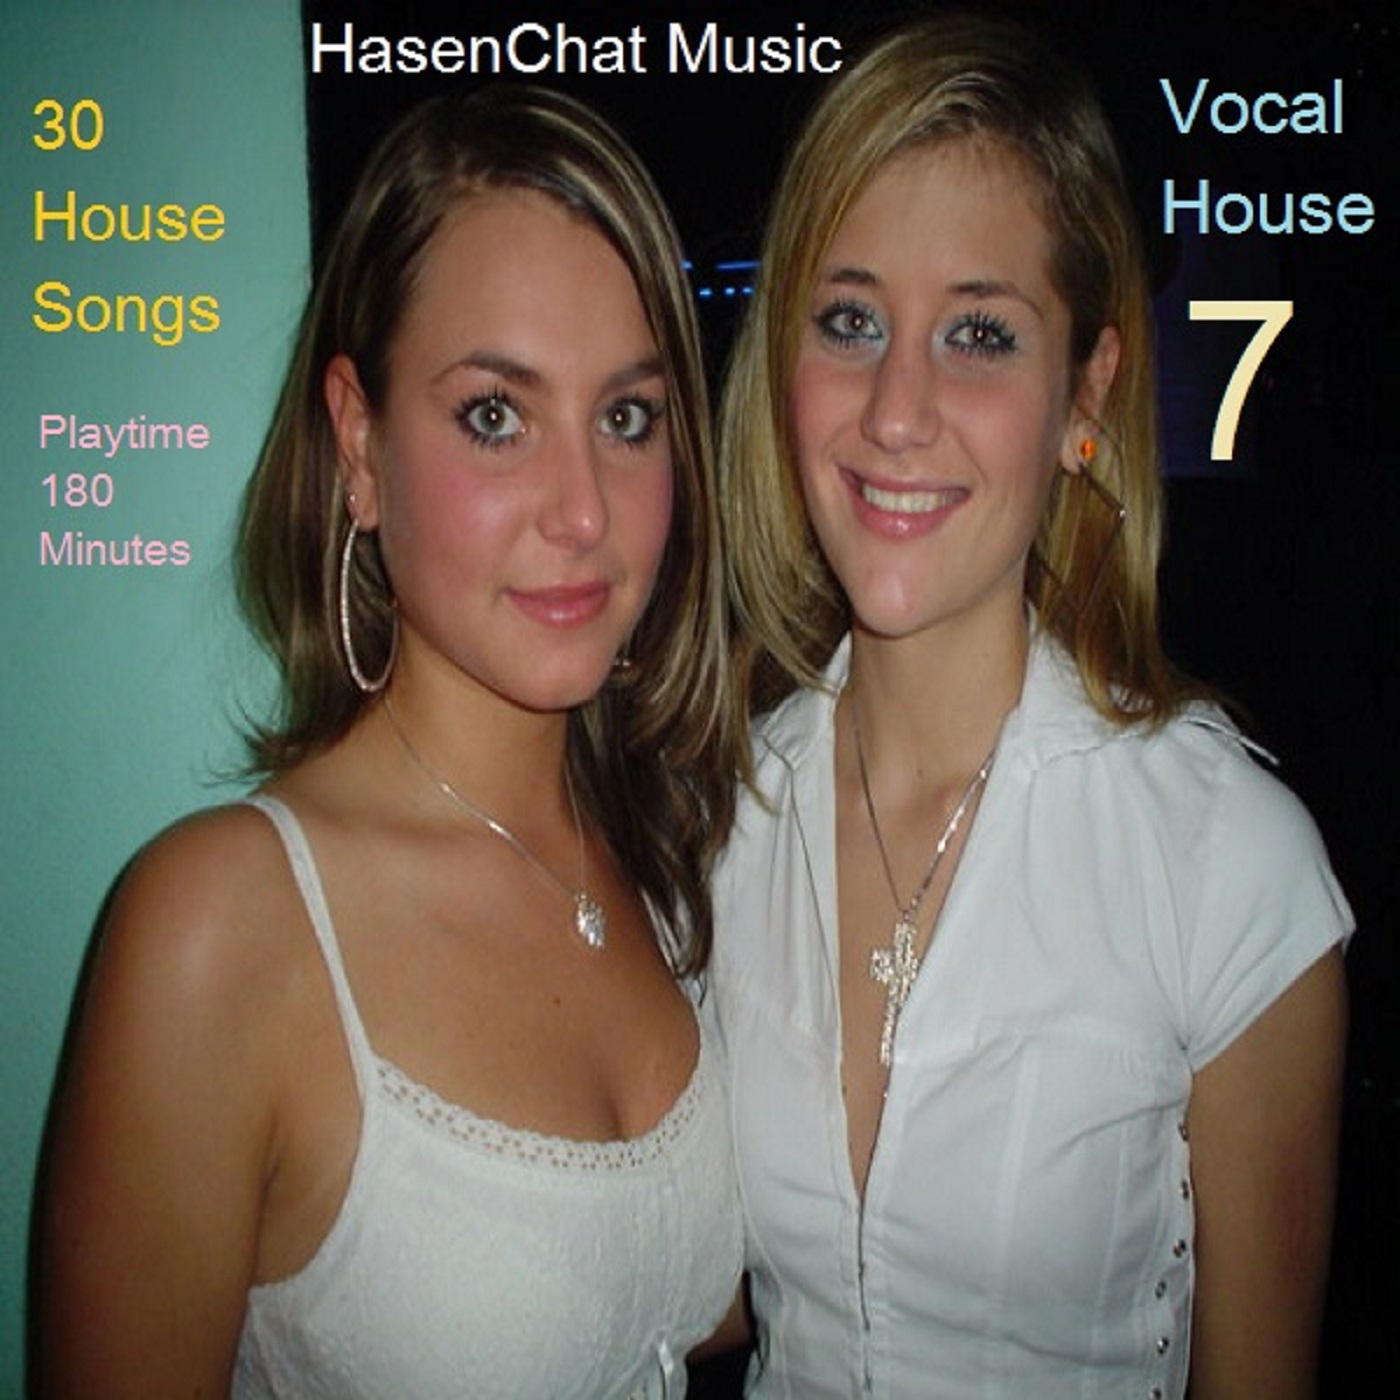 1400 x 1400 - Vocal House 7 Cover